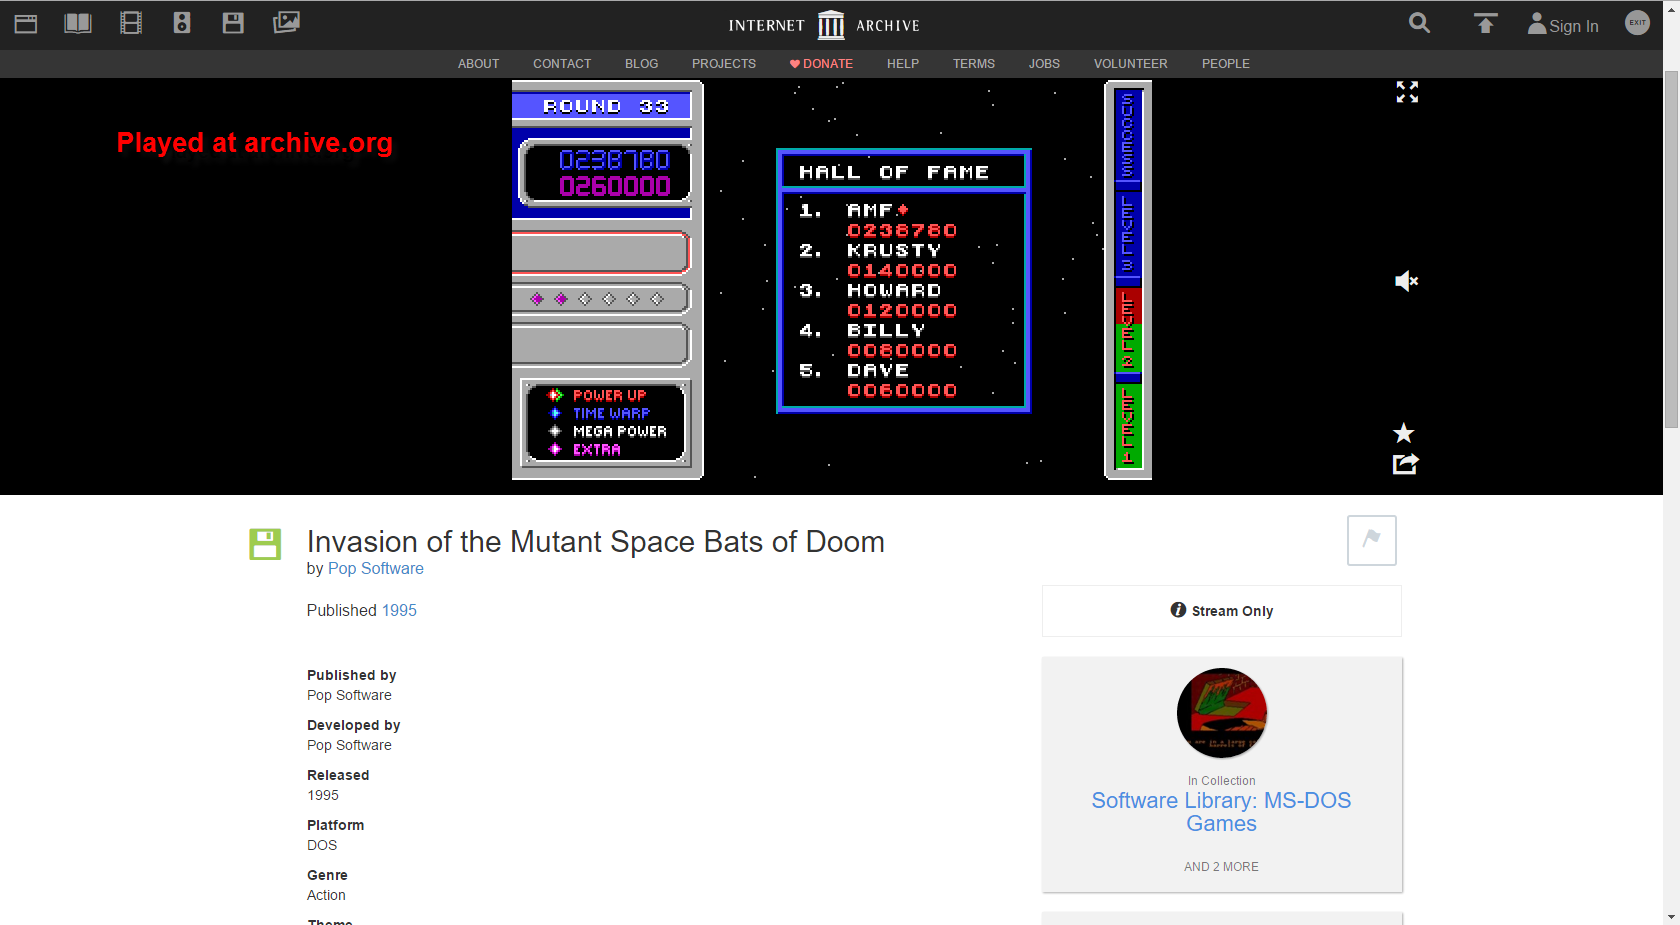 FosterAMF: Invasion of the Mutant Space Bats of Doom (PC Emulated / DOSBox) 238,780 points on 2015-12-03 15:58:21